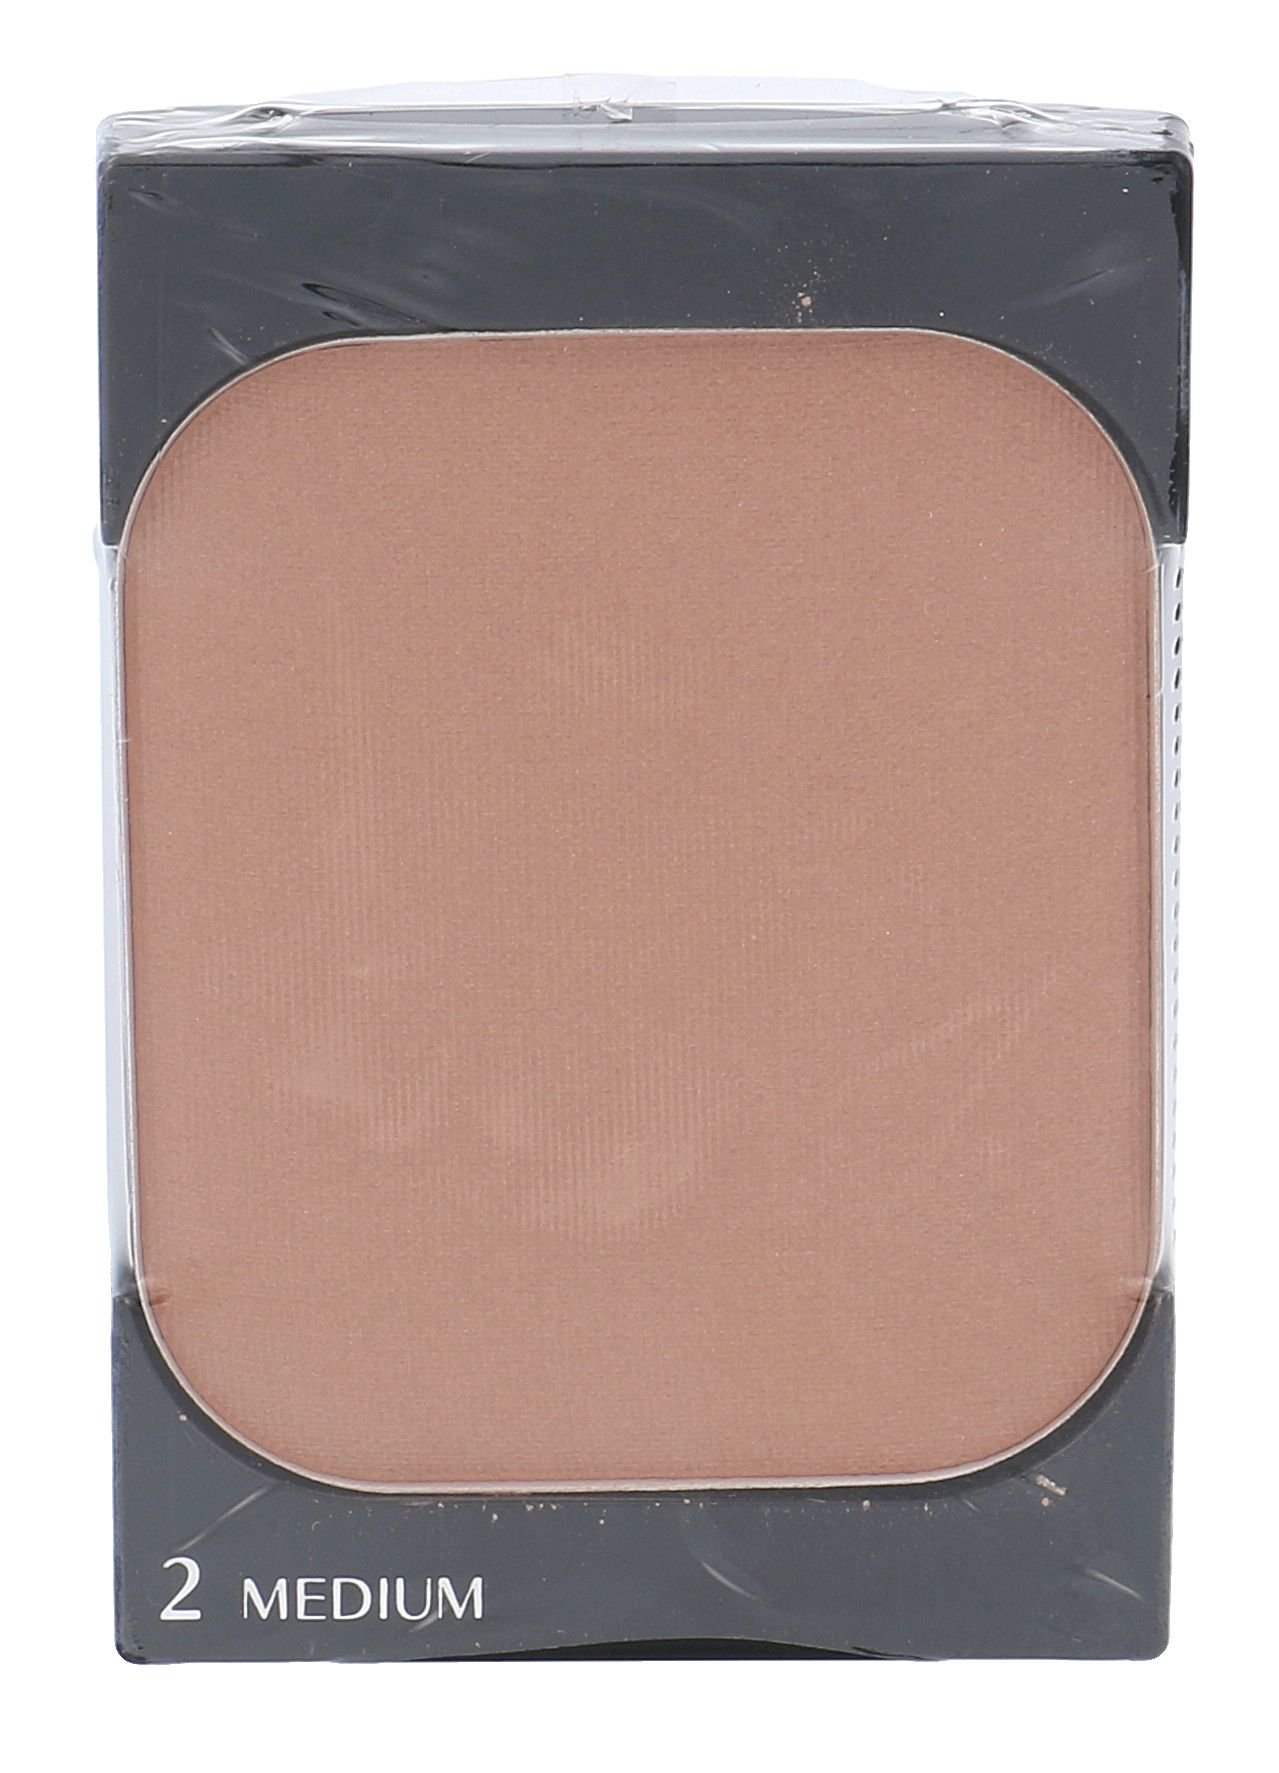 Shiseido Bronzer Cosmetic 12ml 2 Medium